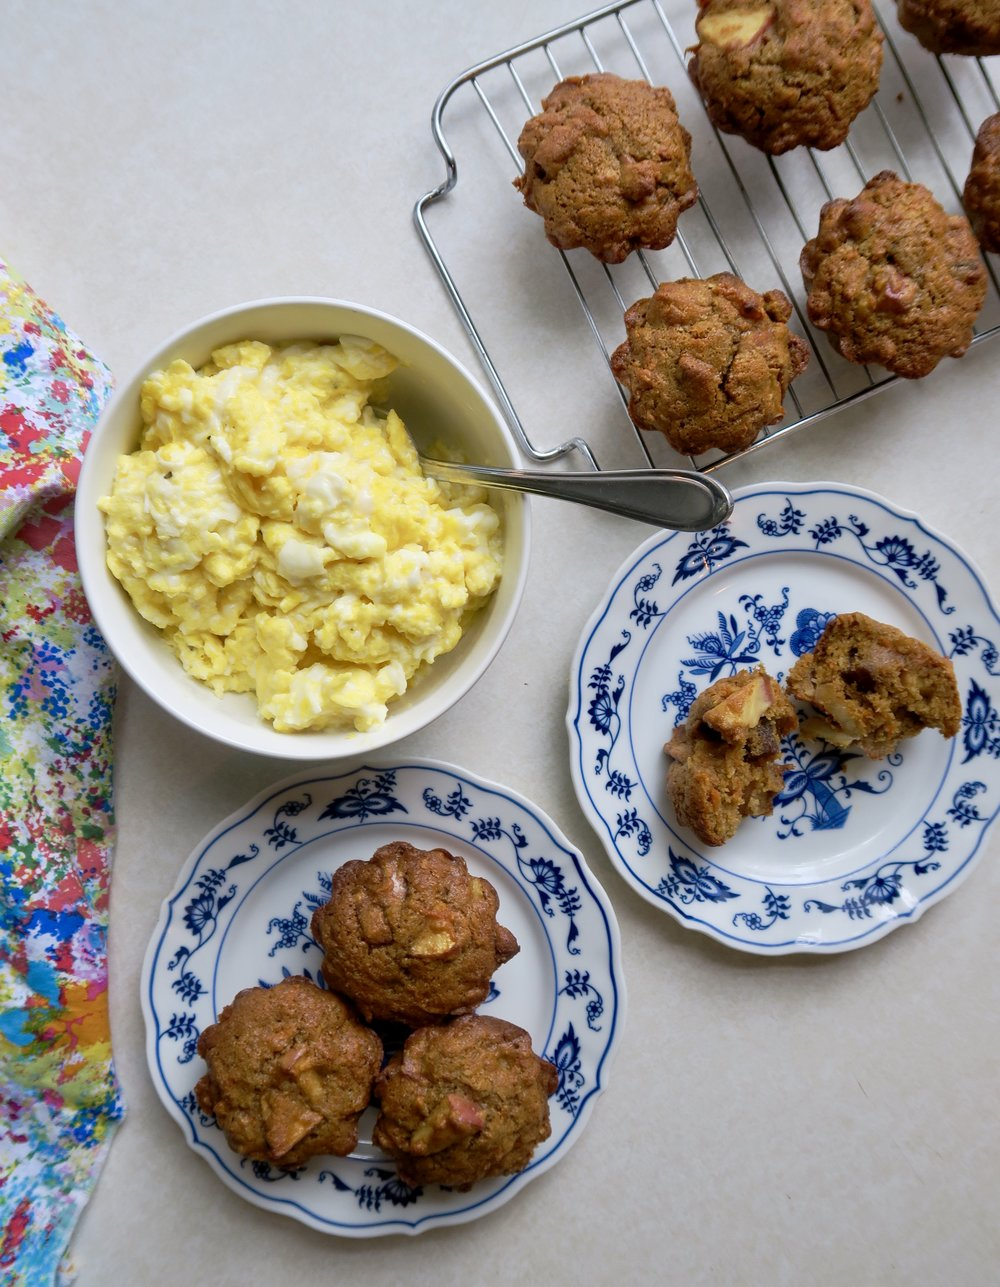 Morning Glory Muffins, Lake Superior Kitchen, healthy muffin recipe